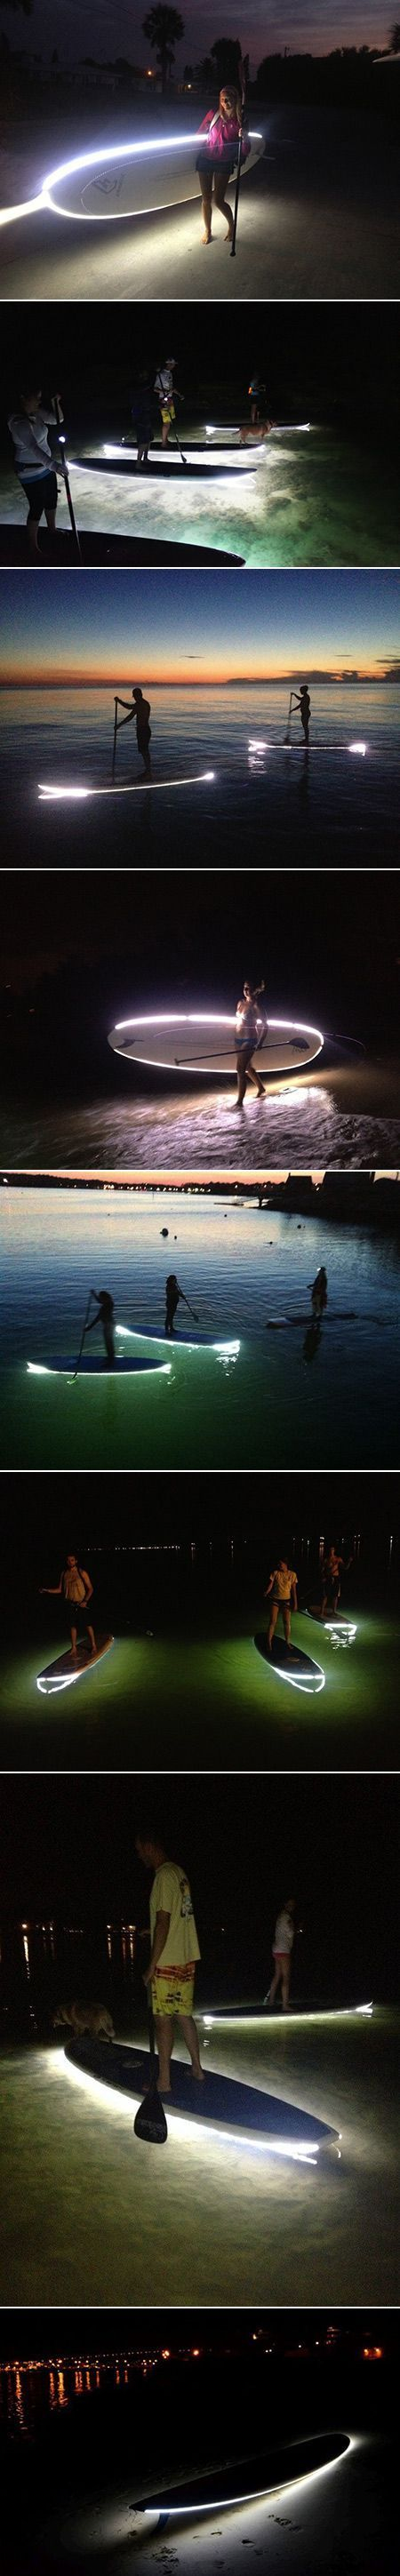 An accessory for paddle boards to make them safer to use at night. By attaching a custom-made, permanent strip of LED lights around the border of a board, surfers are given a source of light to guide them at night and illuminate the ocean floor below them. Repinned by Wondrous www.wondrous.com.au